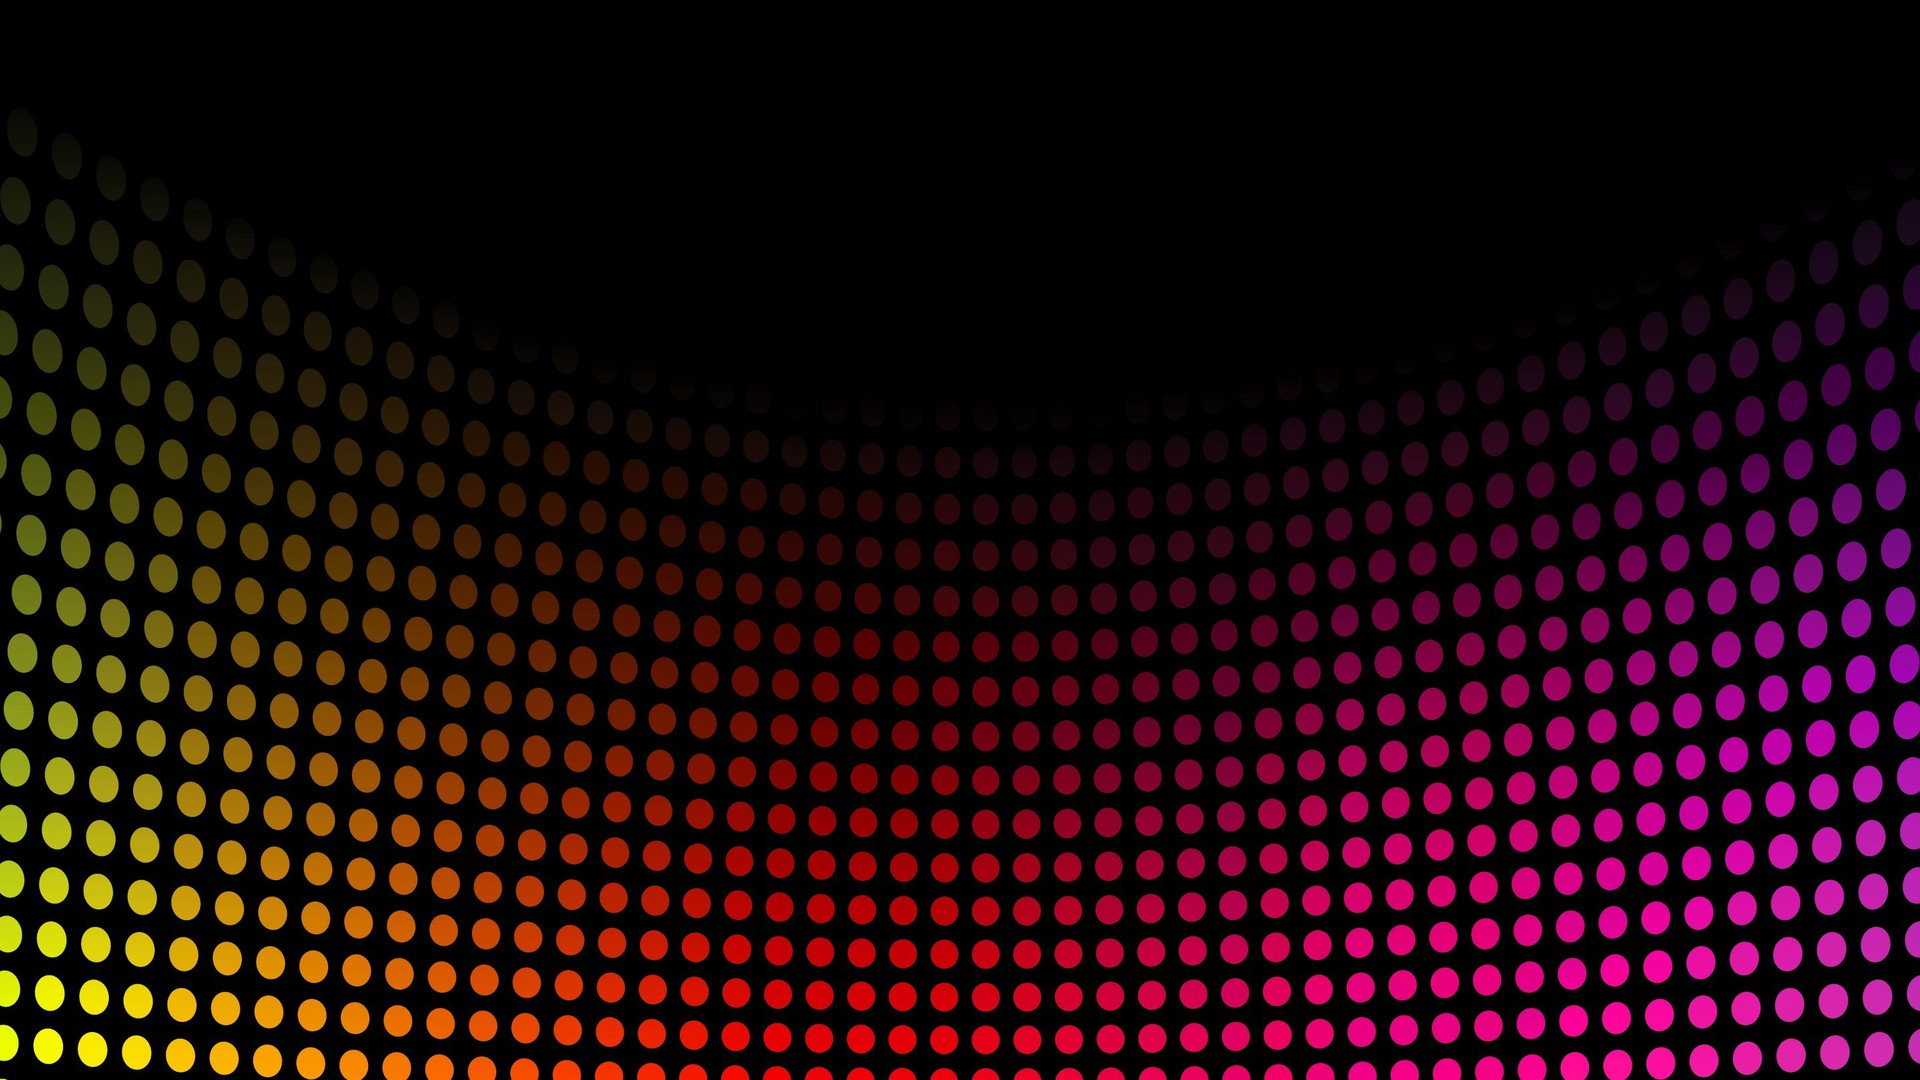 disco hd wallpapers - photo #27